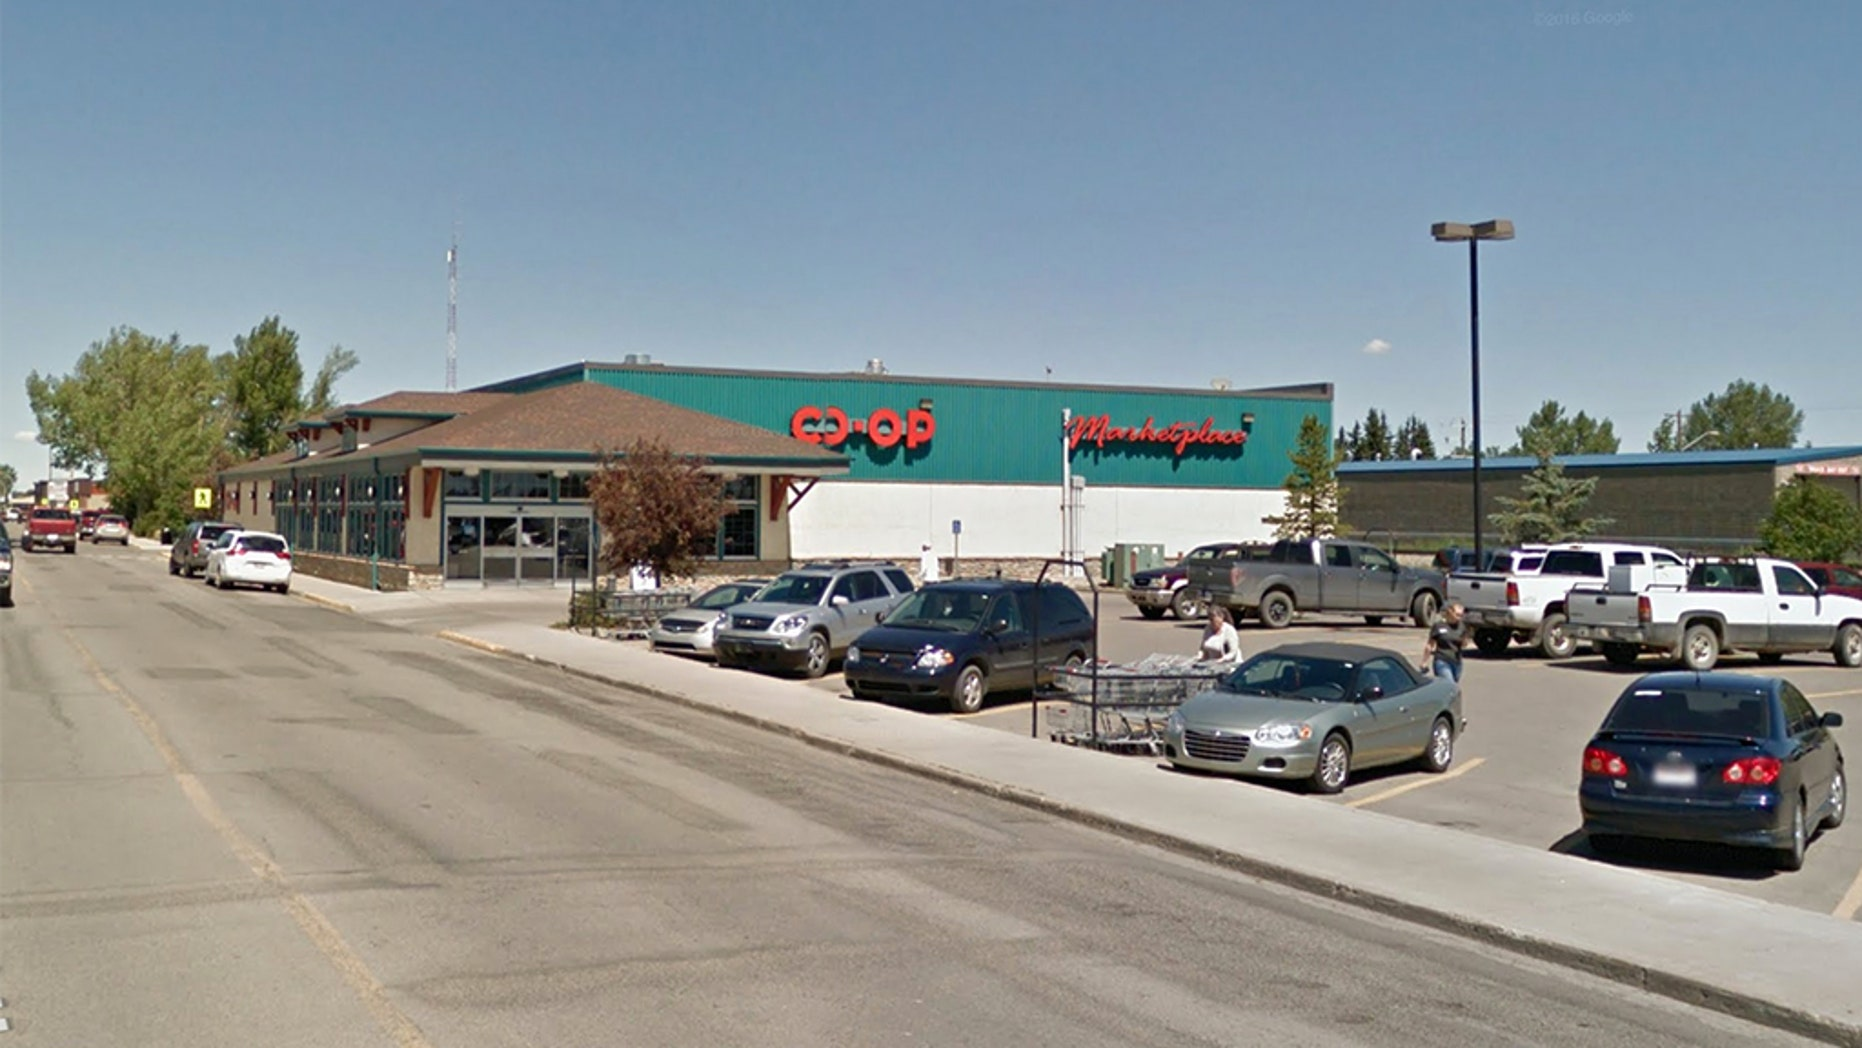 People have been complaining something's been zapping the power out of their key fobs, draining their car batteries and triggering their alarms in a parking lot outside the Westview Co-op grocery store in Carstairs, a small town about 40 miles north of Calgary.